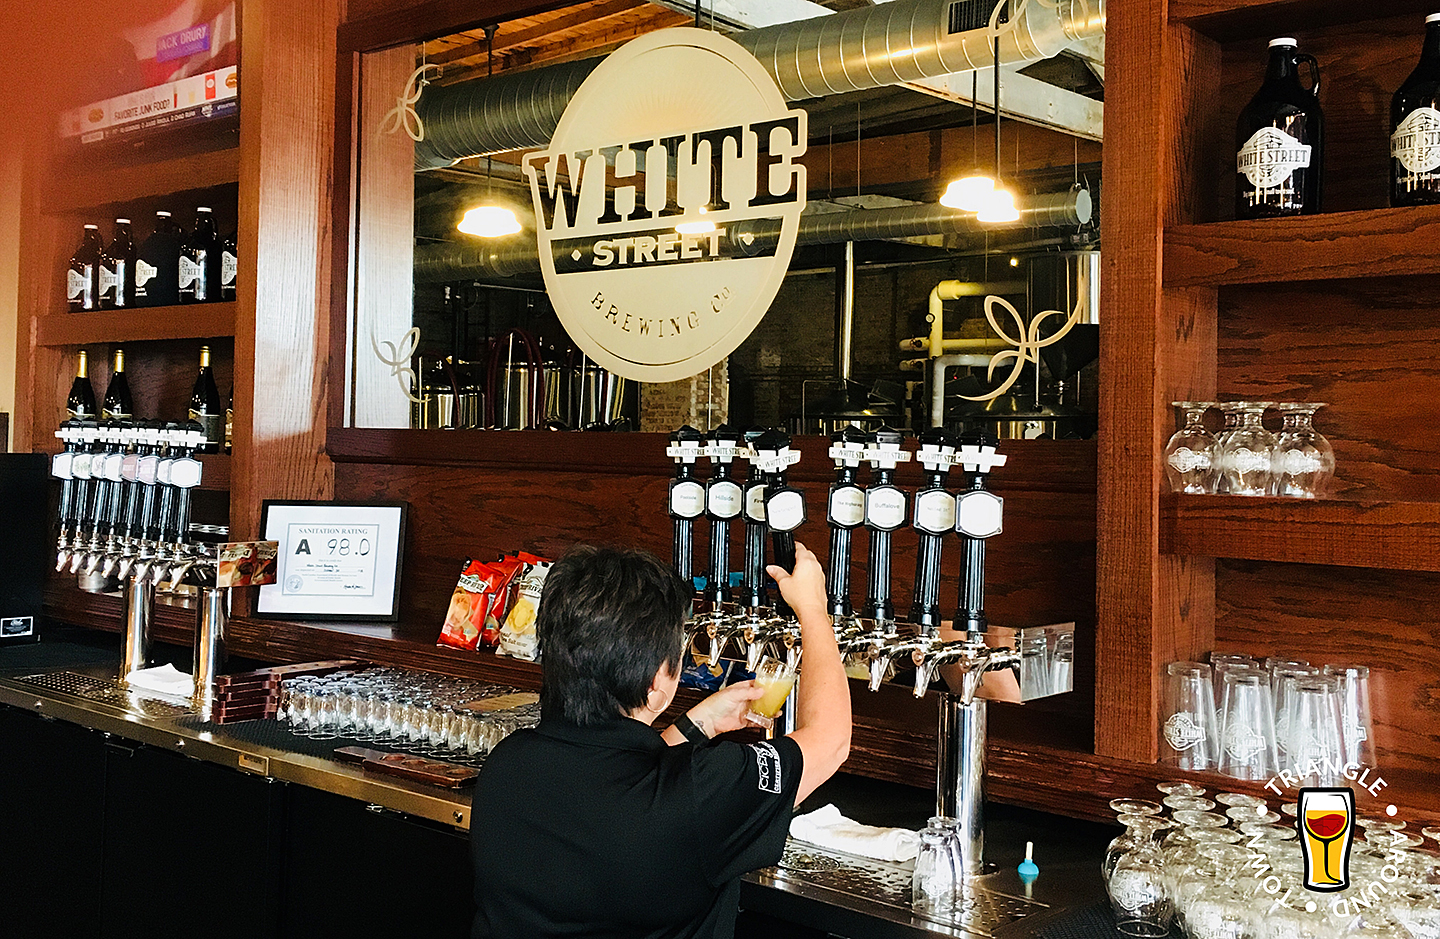 White-Street-Brewing-Company.jpg